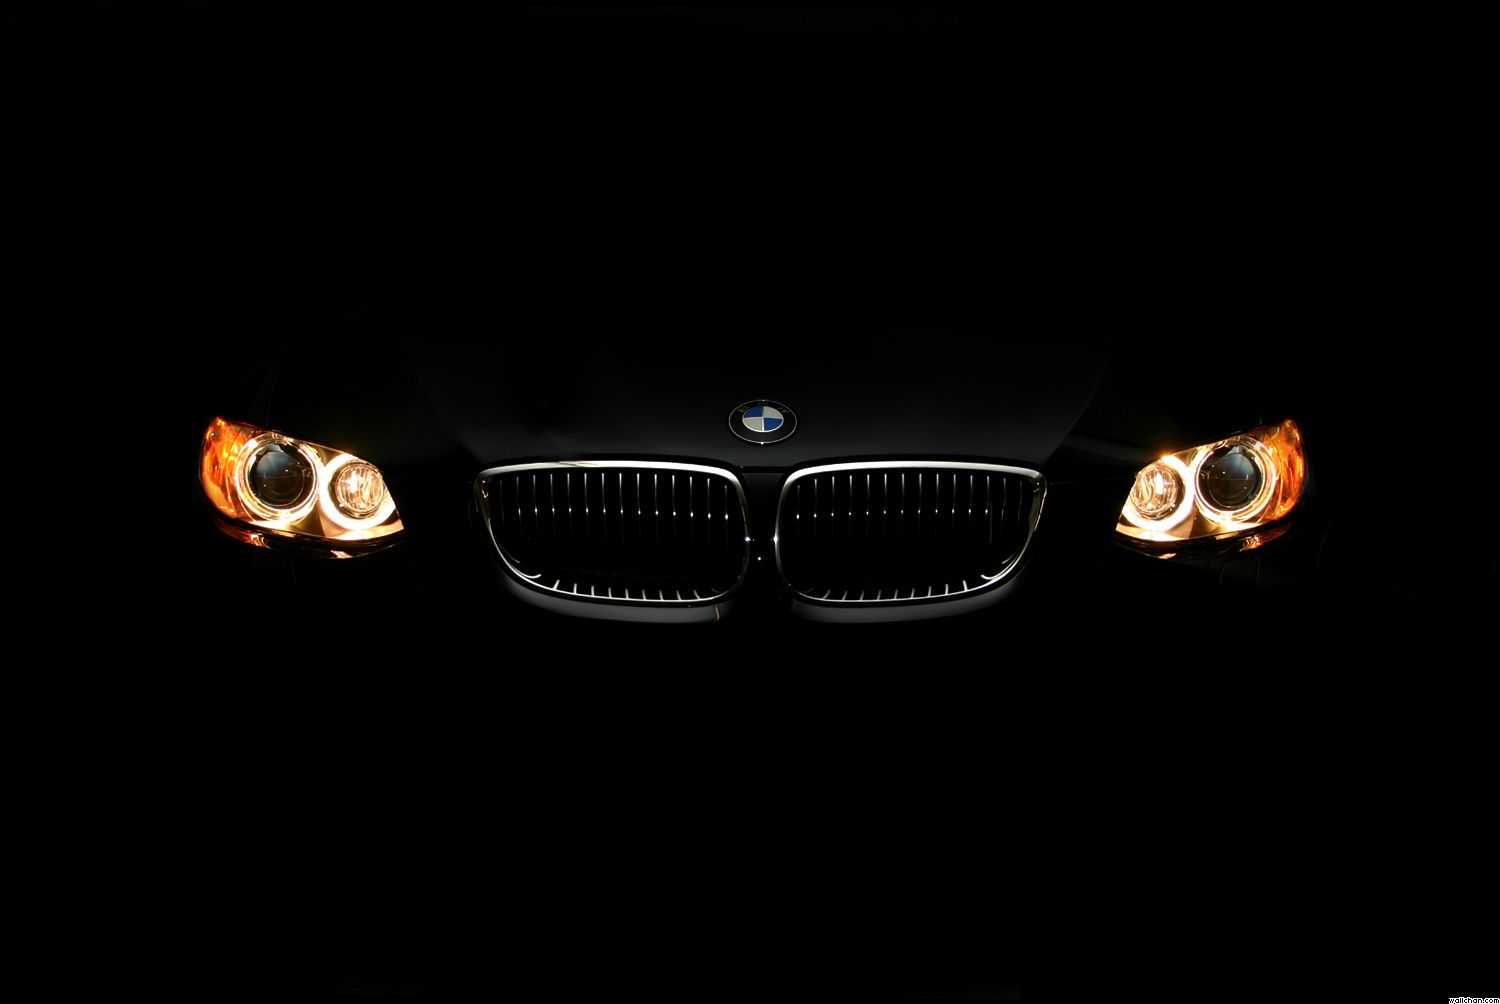 Black Bmw Cool Pic Bmw Cars Bmw Black Bmw Wallpapers